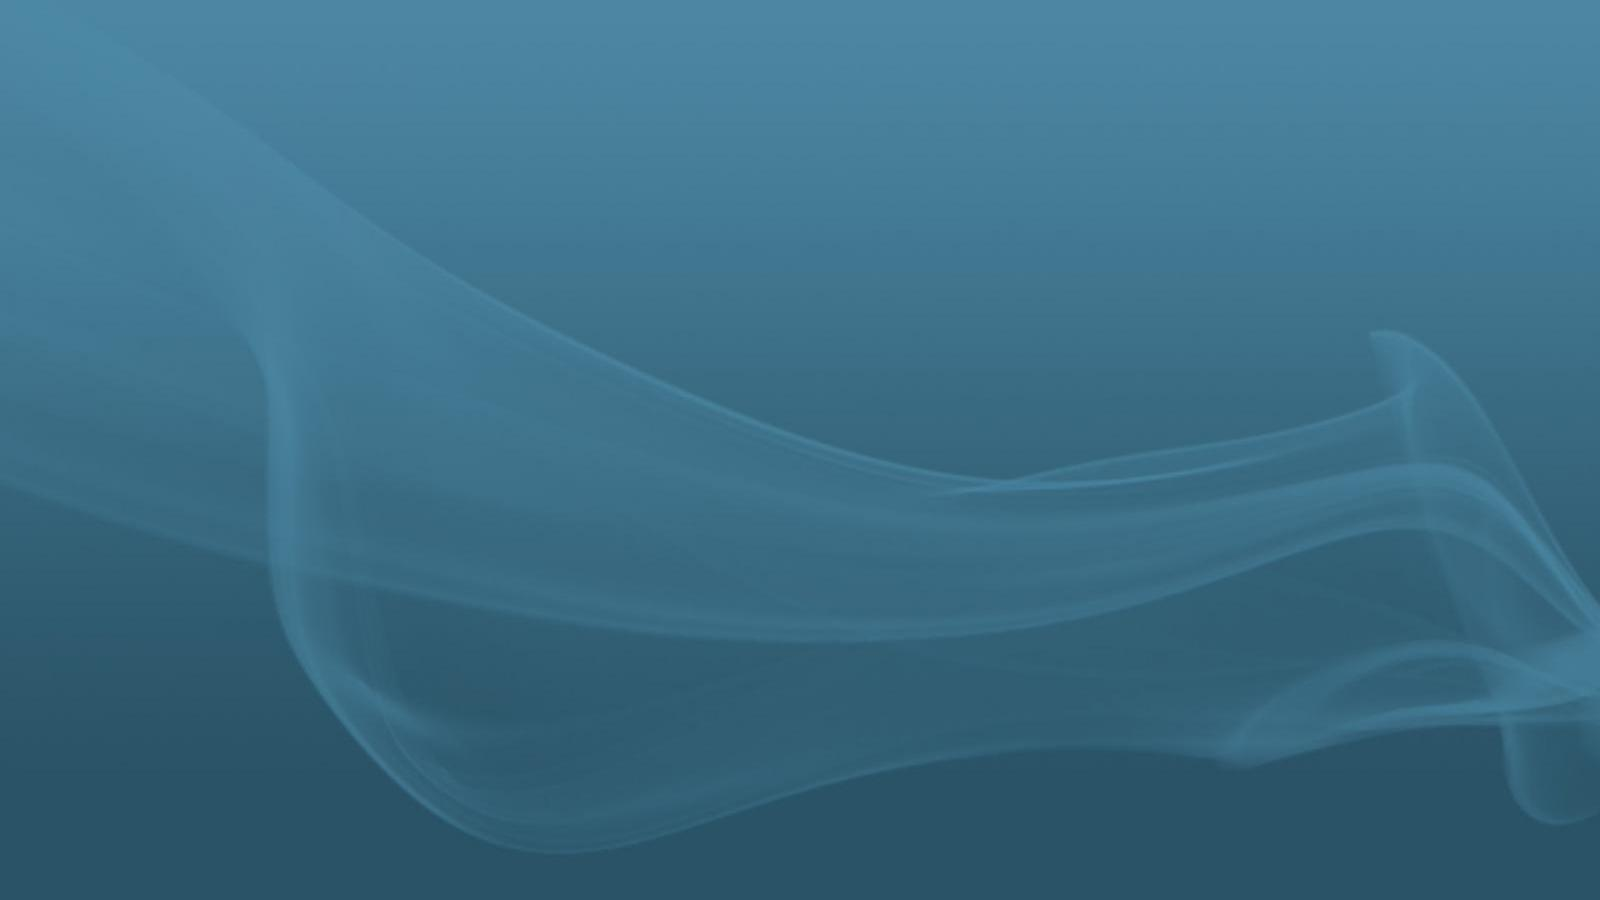 Aqua Blue Smoke Wallpaper Smoke Desktop Wallpaper Blue Wallpapers 1600x900